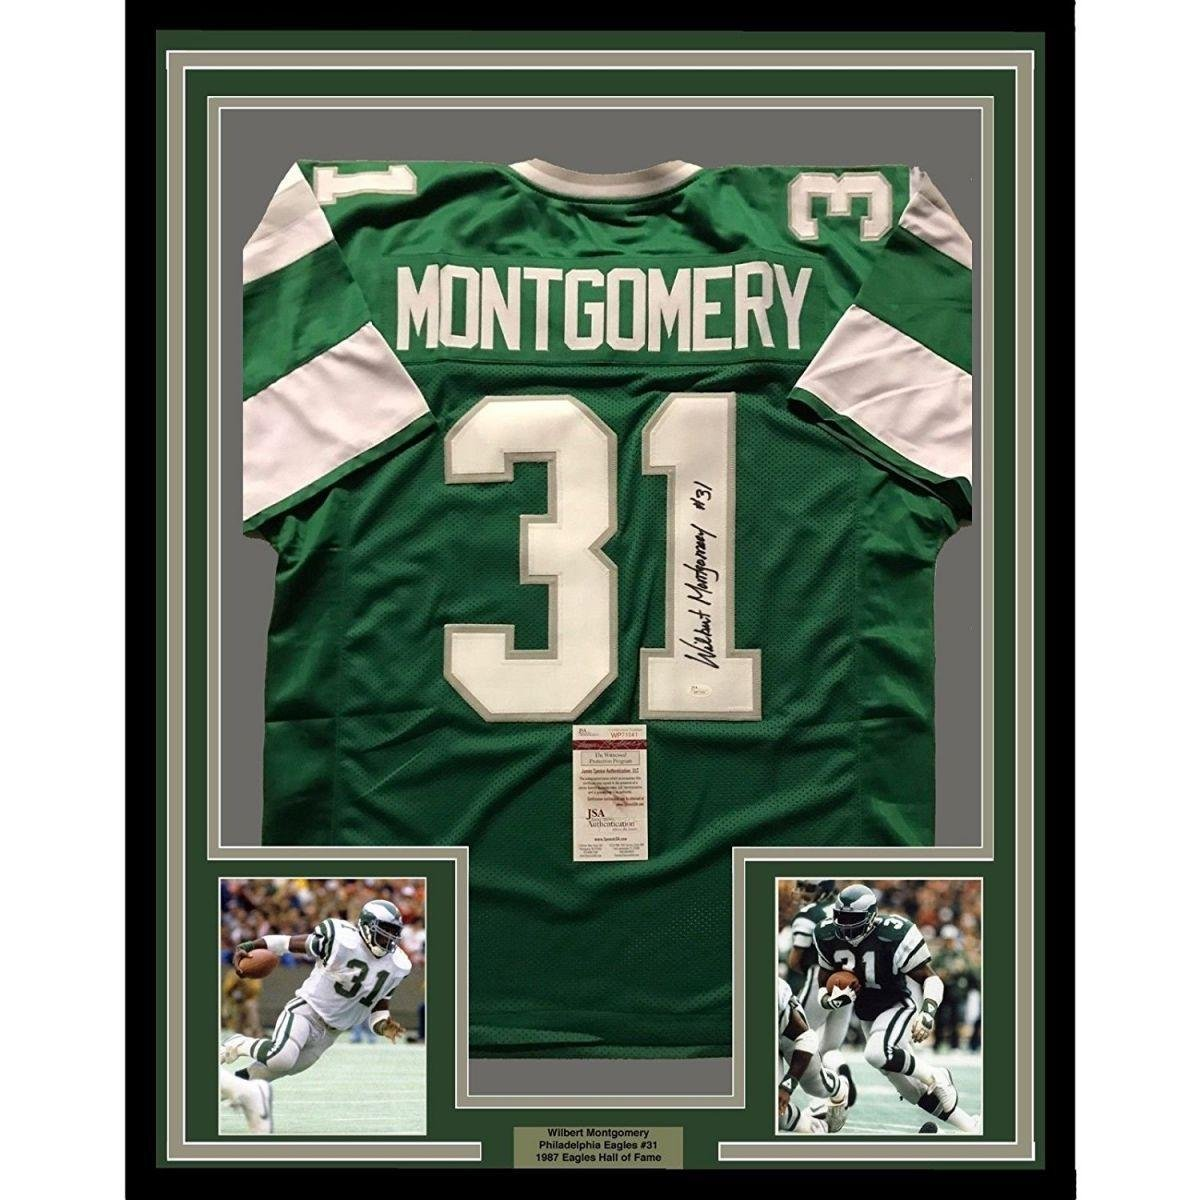 finest selection a4eb7 93c93 Wilbert Montgomery Signed Jersey - FRAMED 33x42 Green COA ...